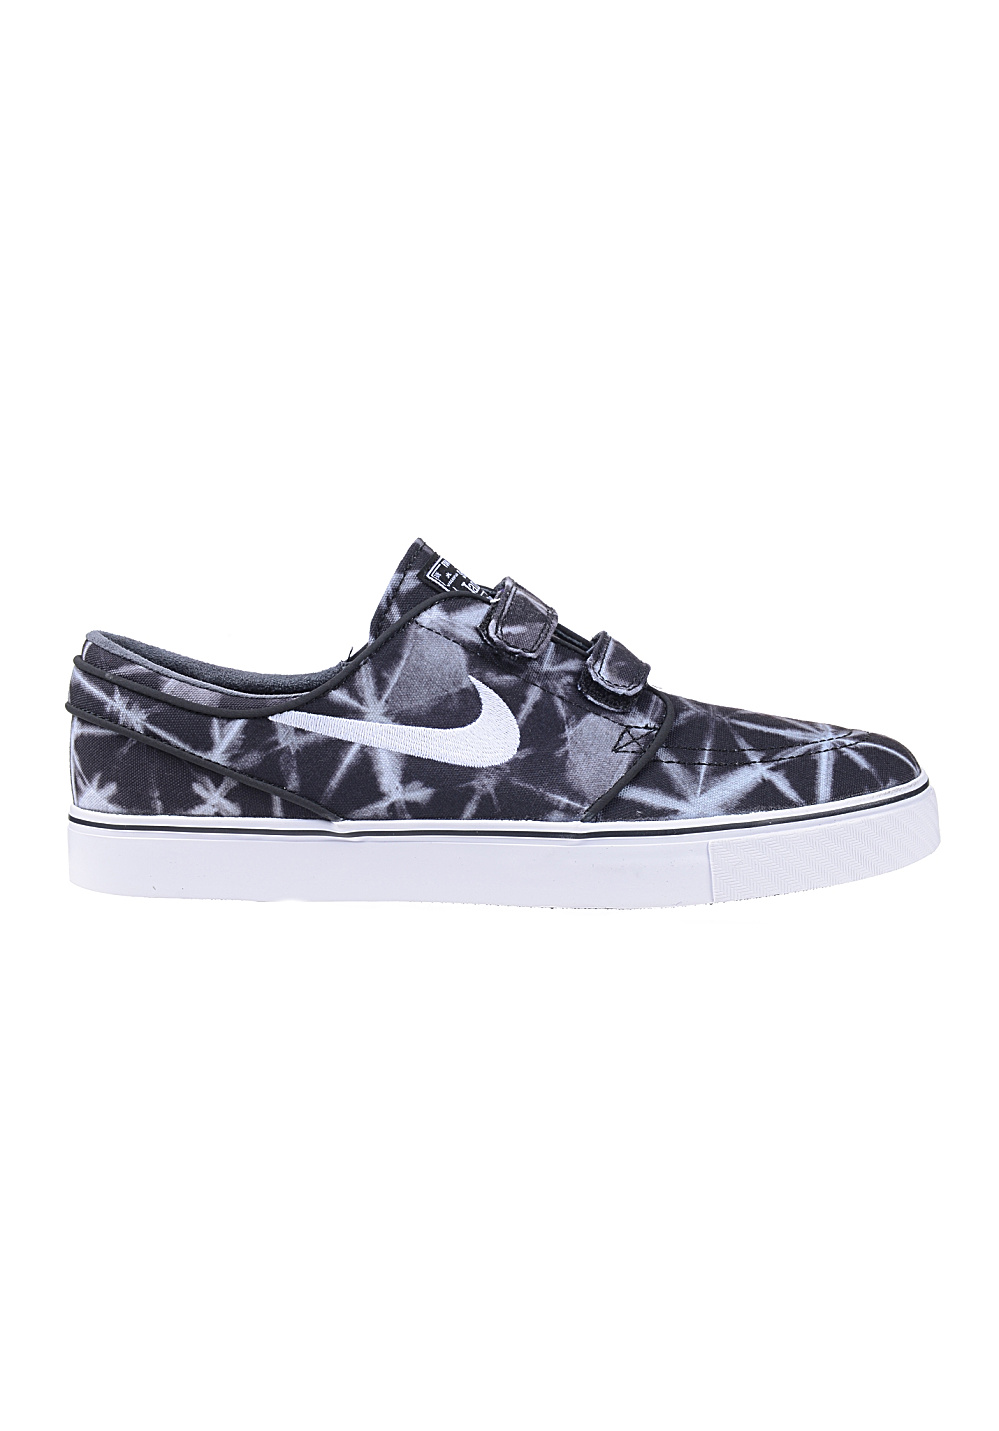 ... NIKE SB Zoom Stefan Janoski AC - Sneakers for Men - Black. Previous